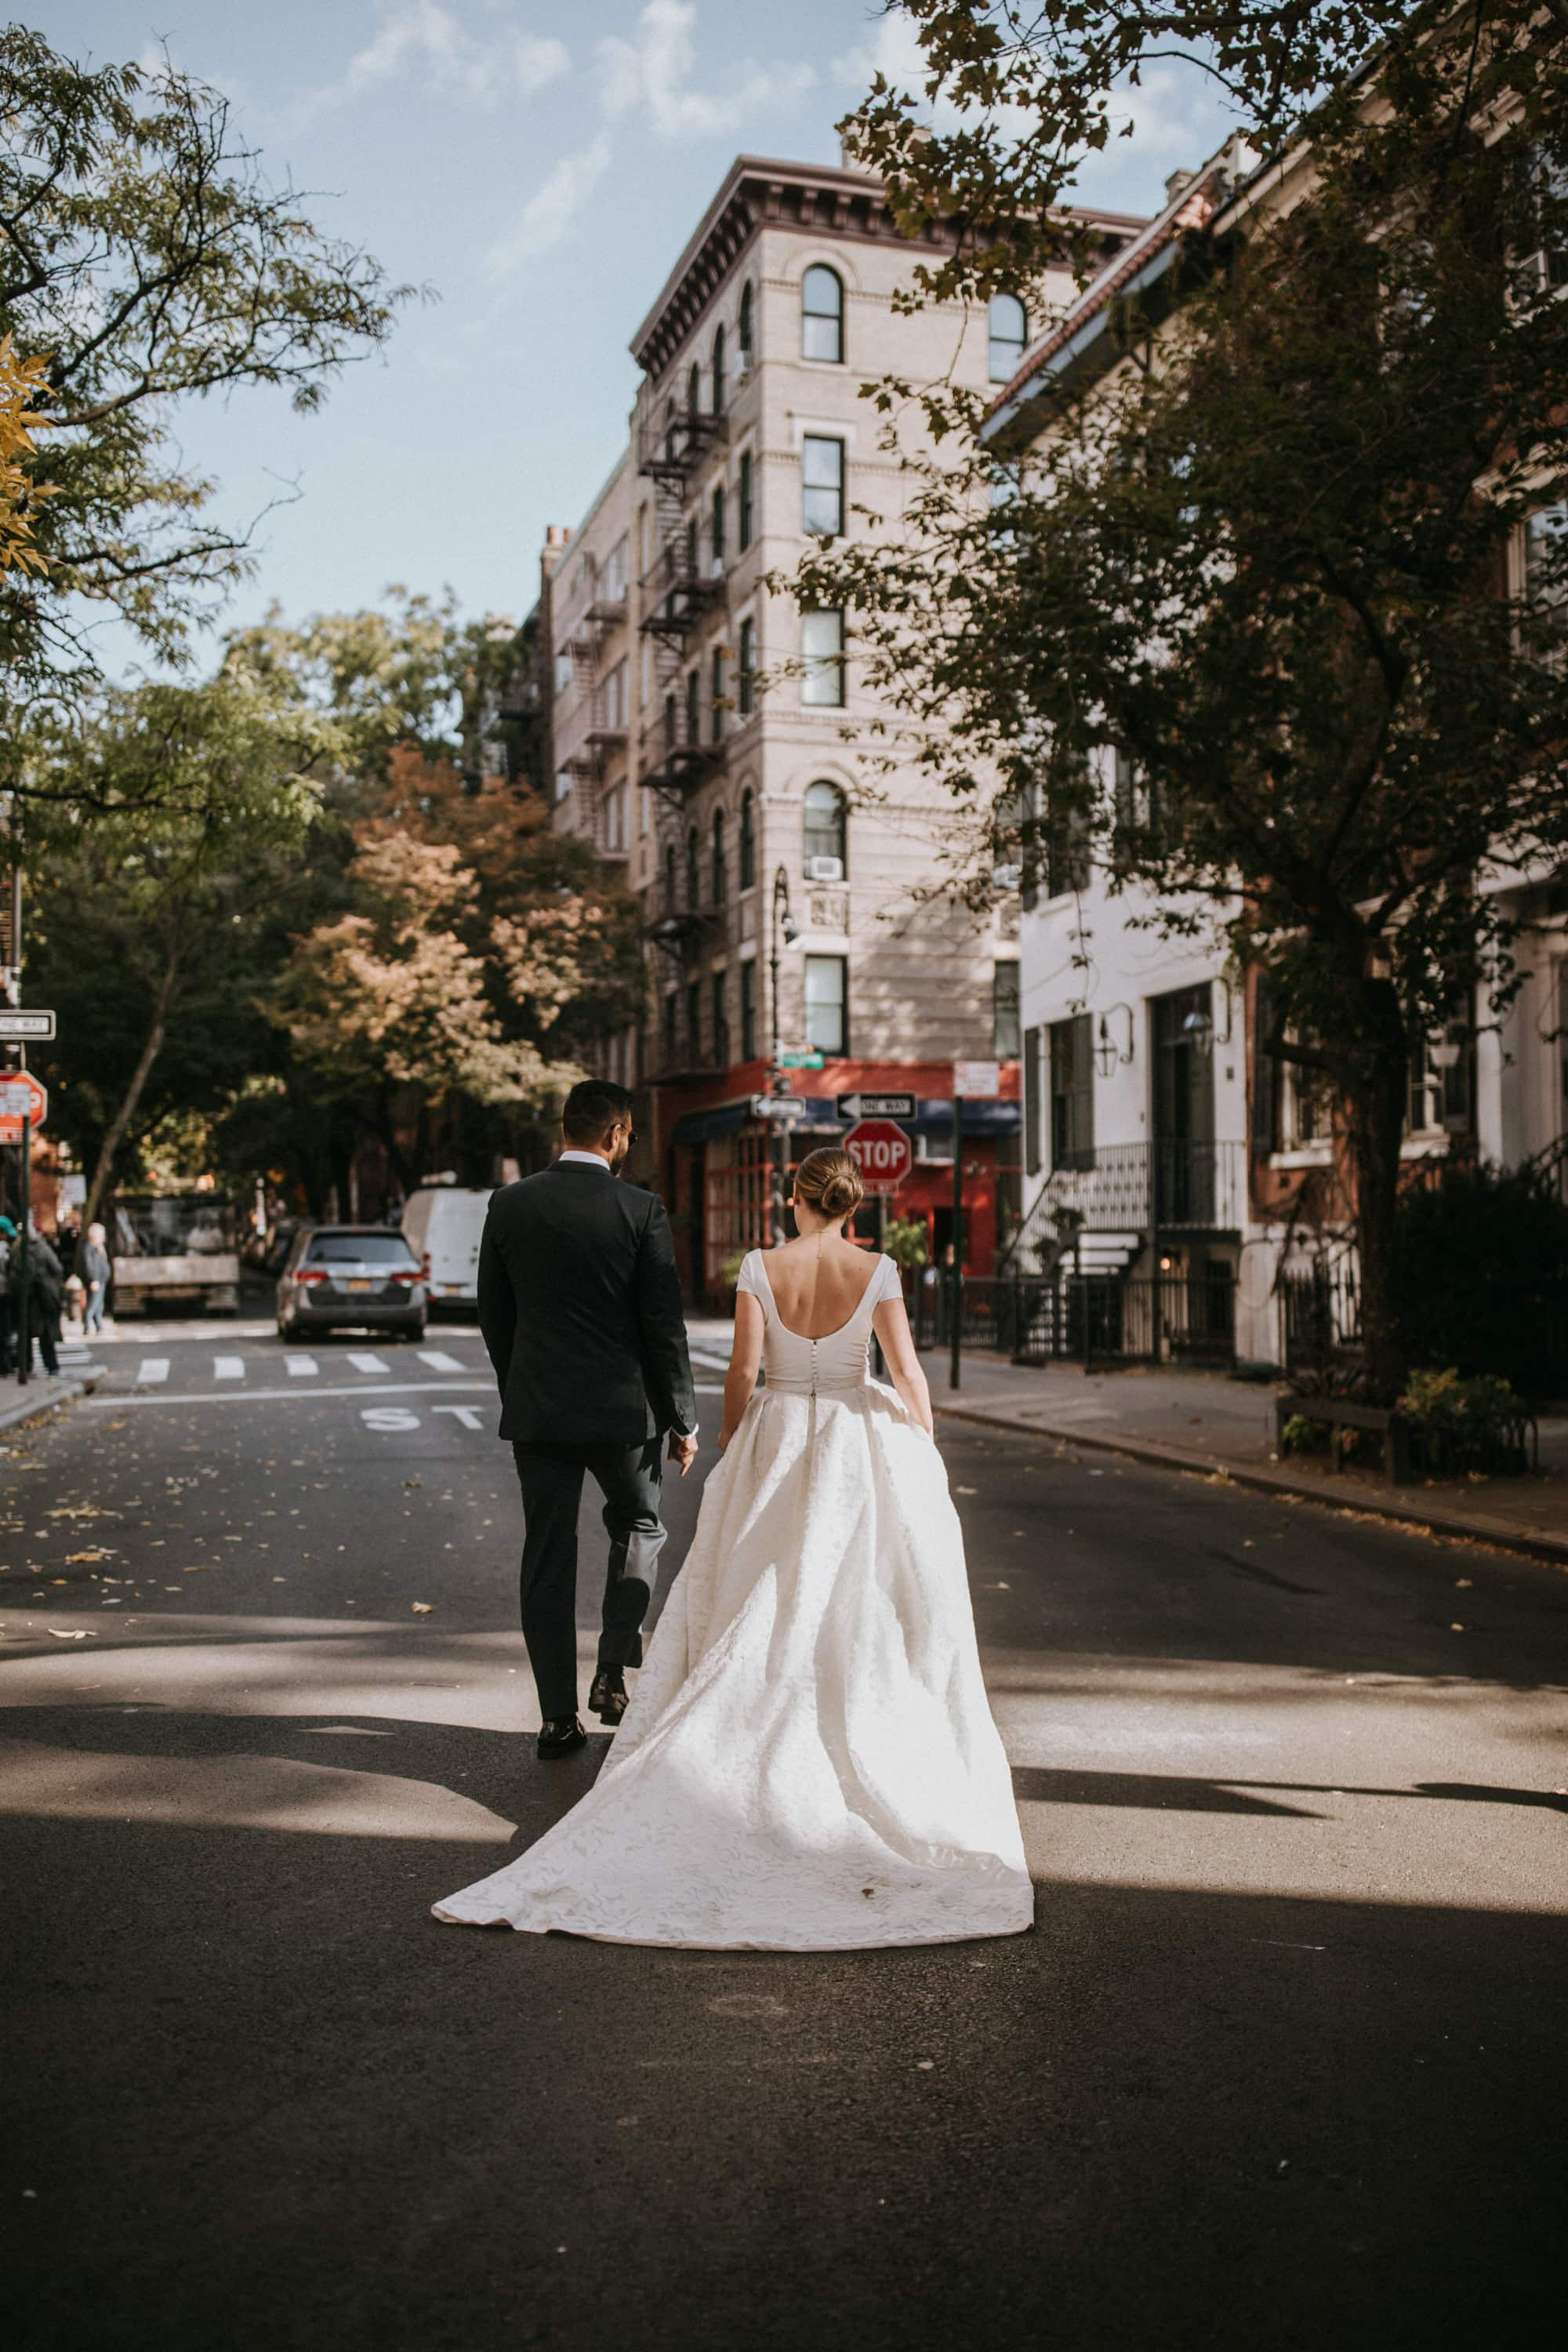 The bride and groom cross the steet in front of a red bistro on their walk through the streets of New York. In the background is the famous Friend's Apartment Building Wedding Photographer Brent Calis.